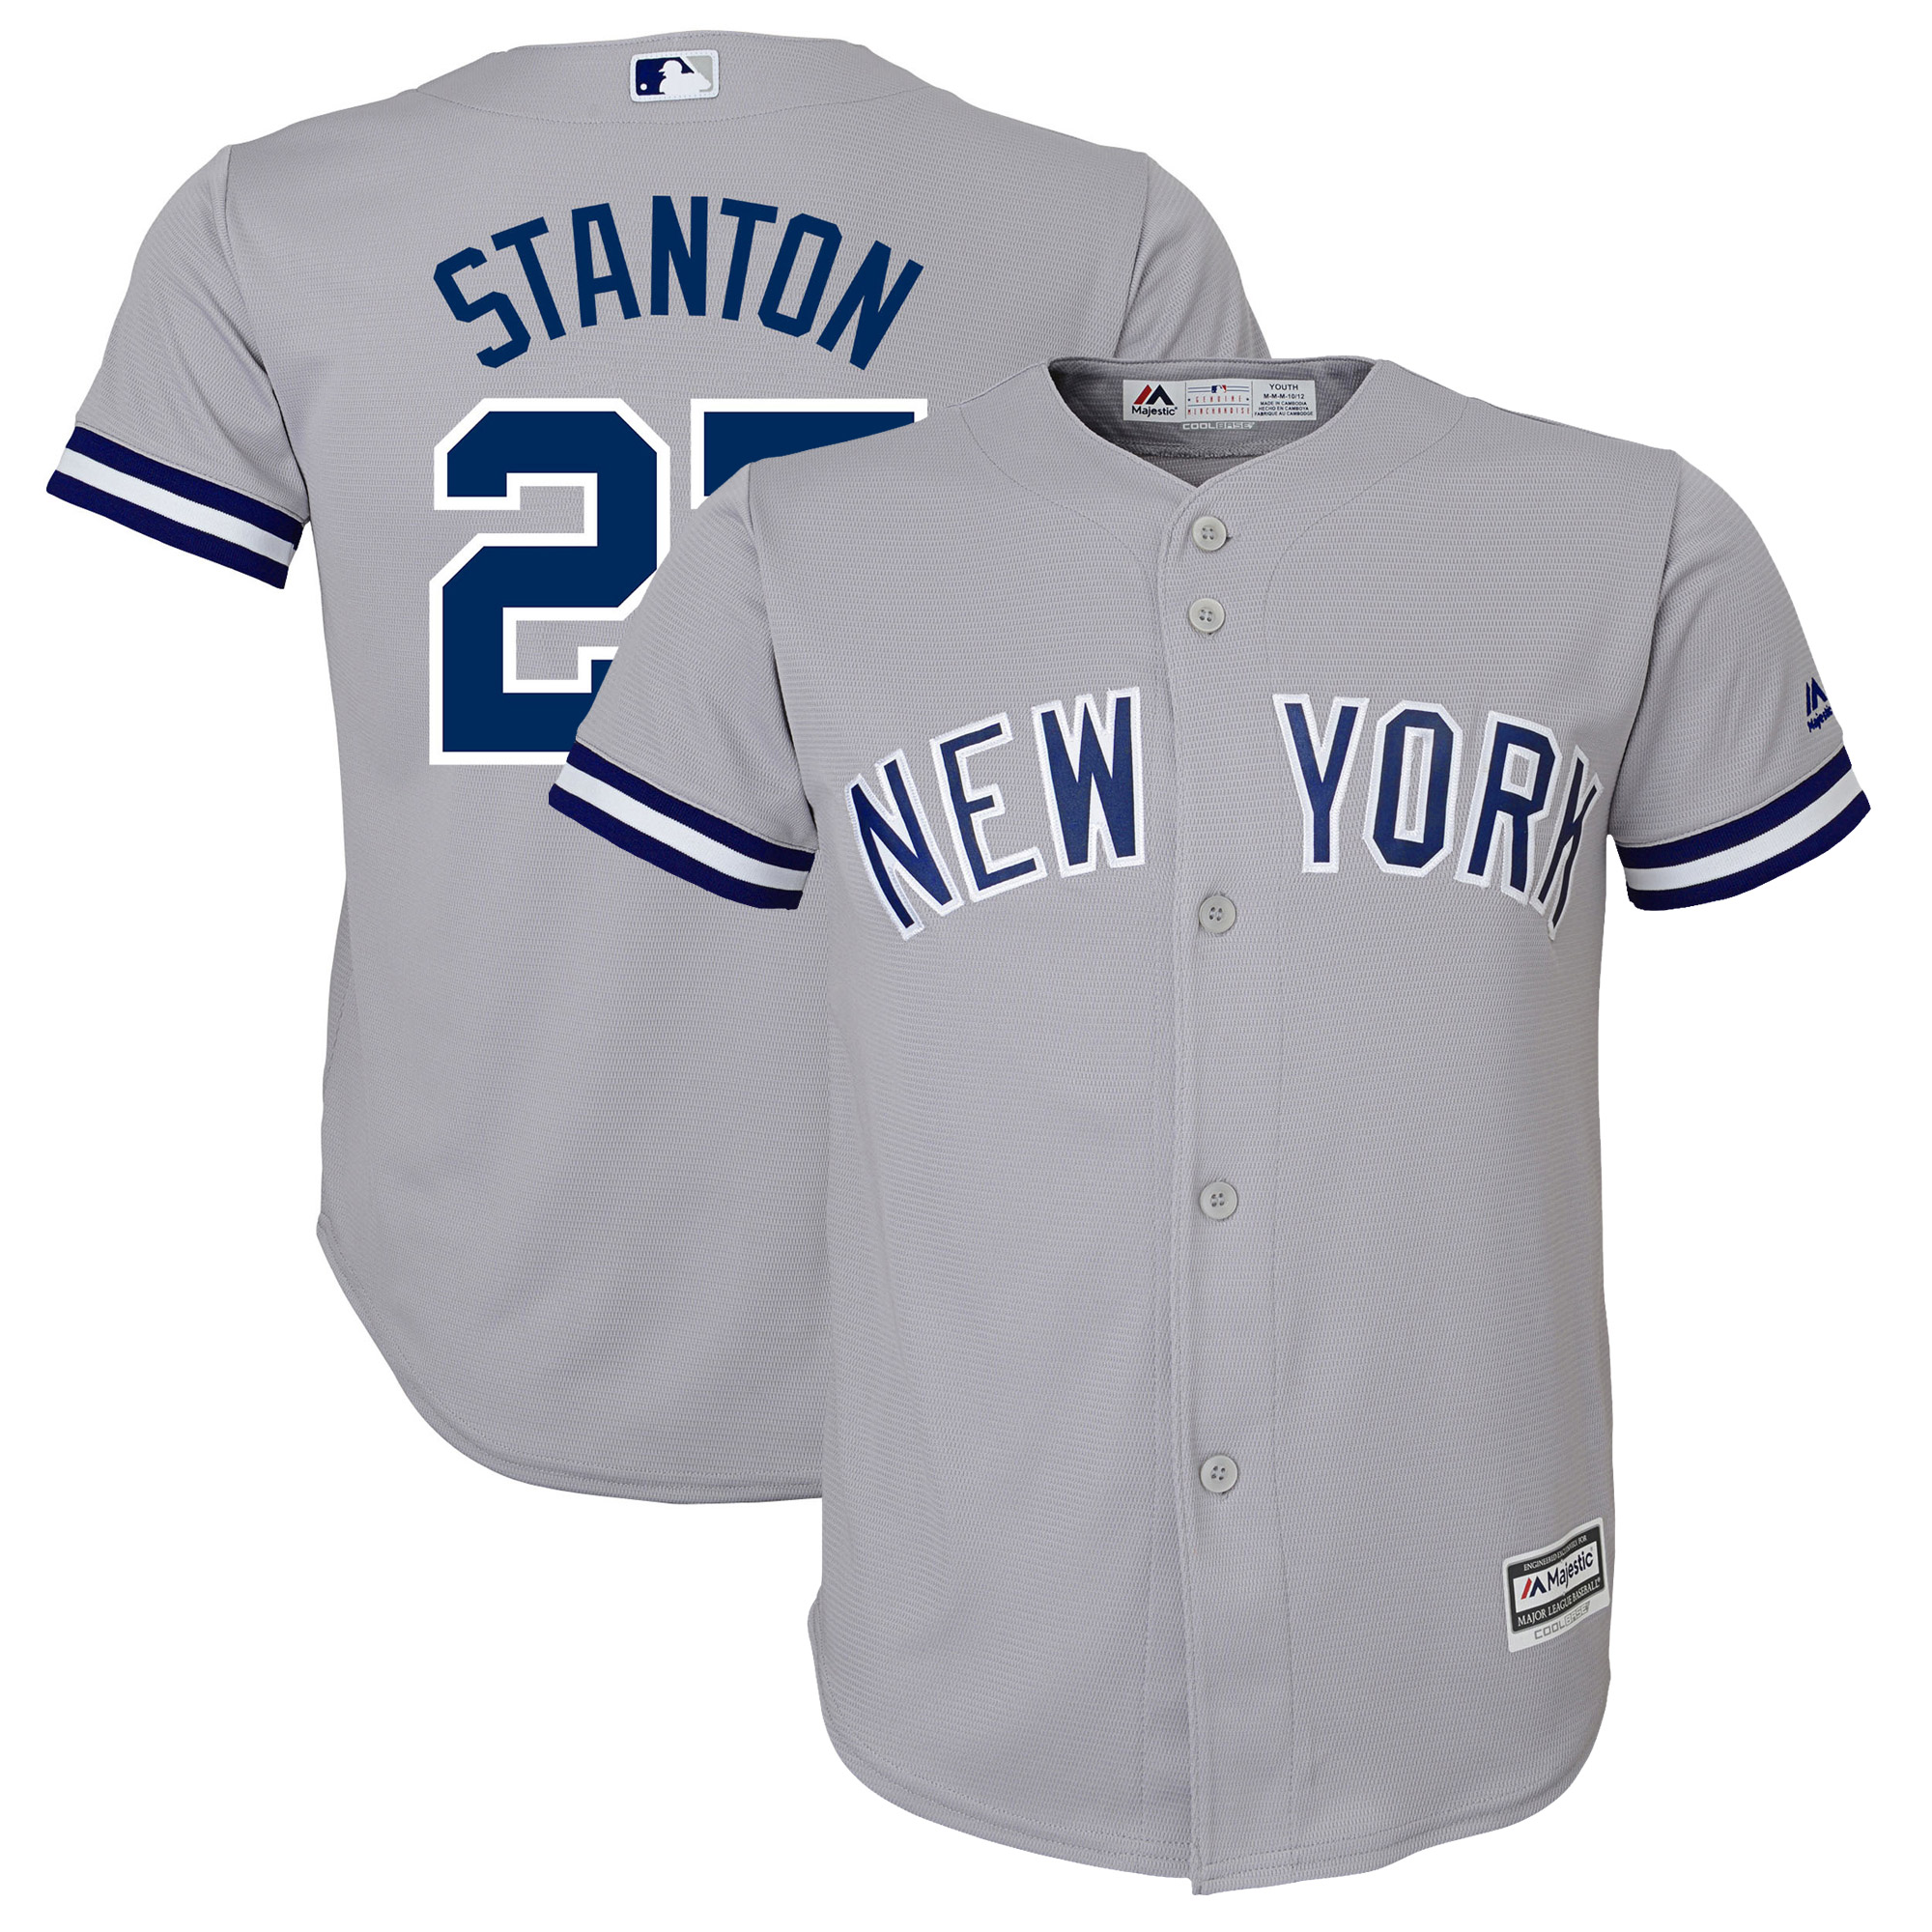 Giancarlo Stanton New York Yankees Majestic Youth Road Official Team Cool Base Player Jersey - Gray